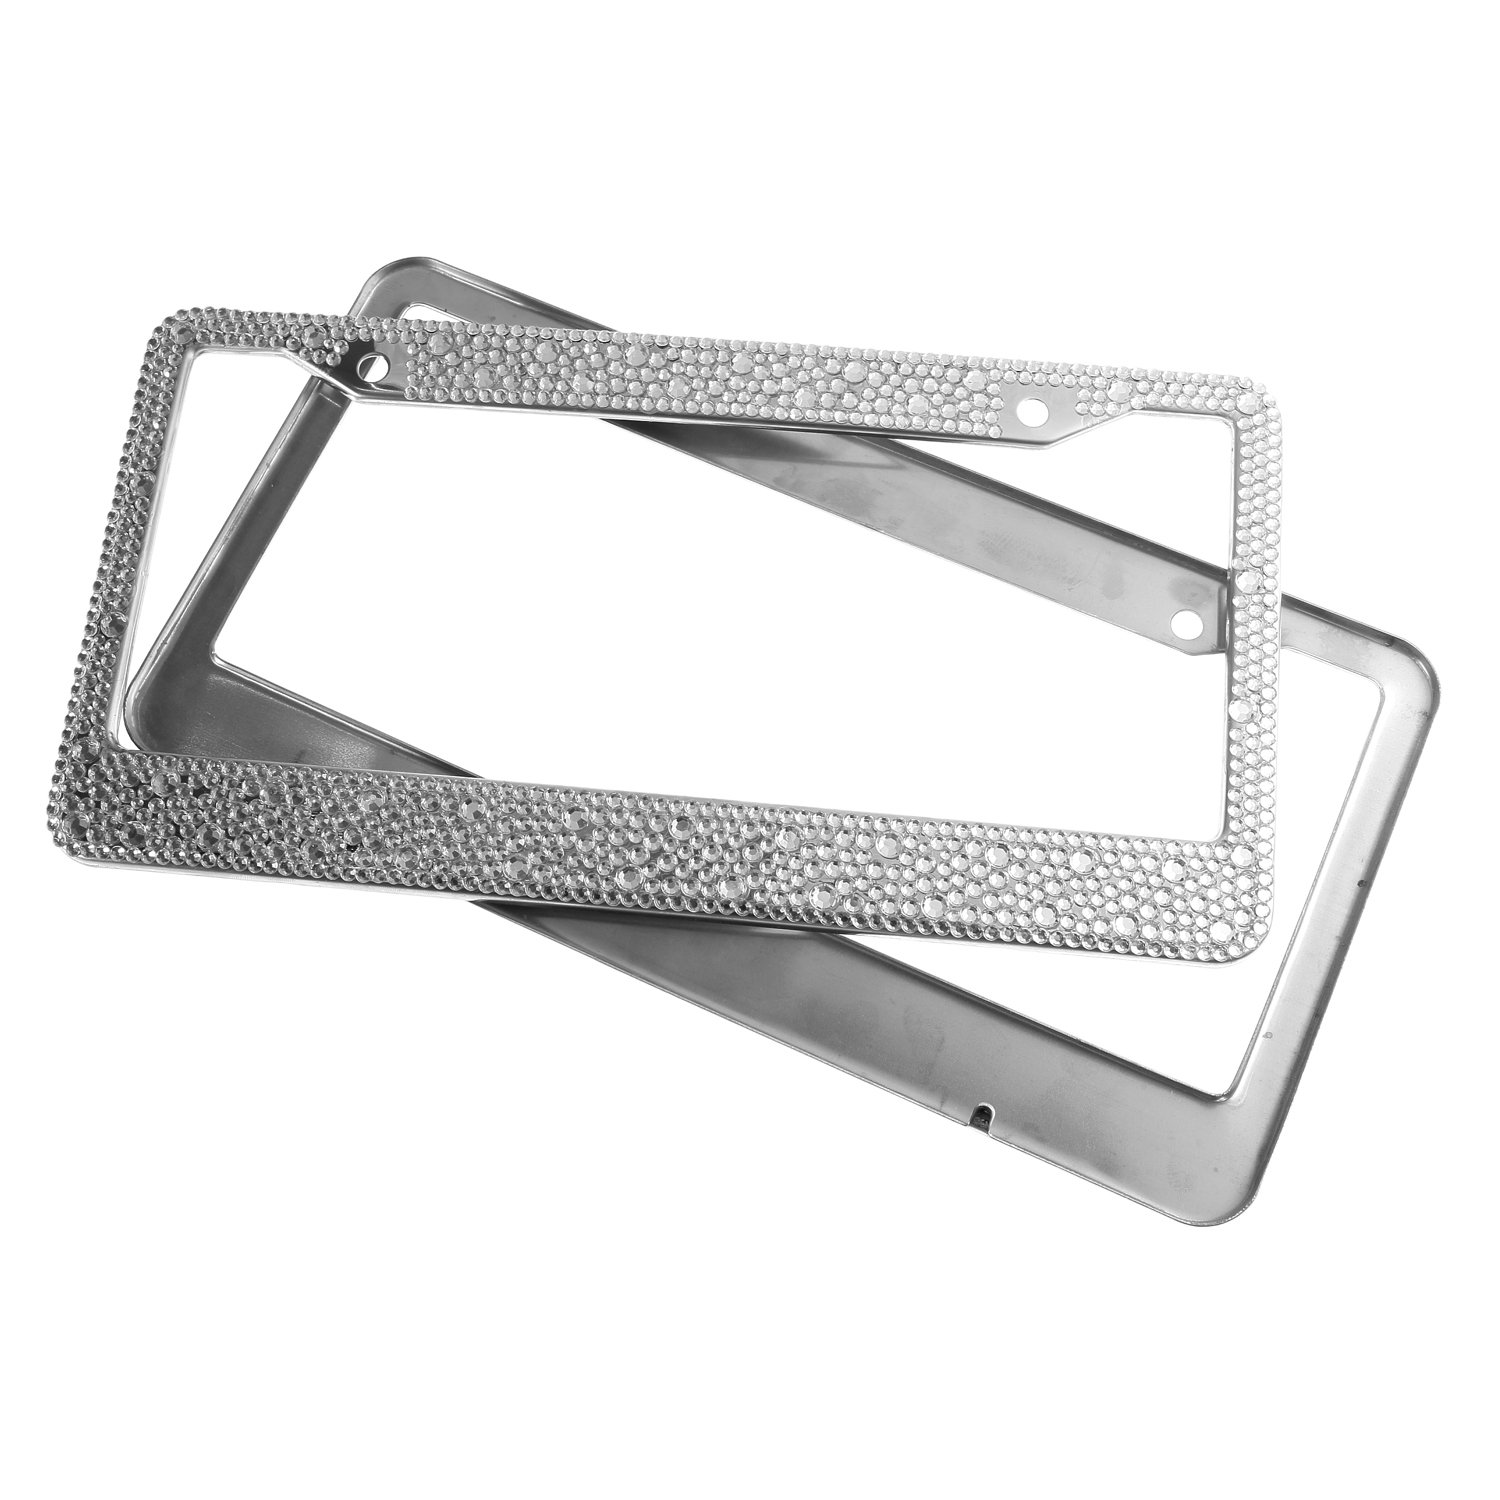 Luxury Handmade Mixed Size Clear Bling Crystal License Plate Frame Cute Rhinestone Car//Truck//SUV License Plate Holder 2 Frames